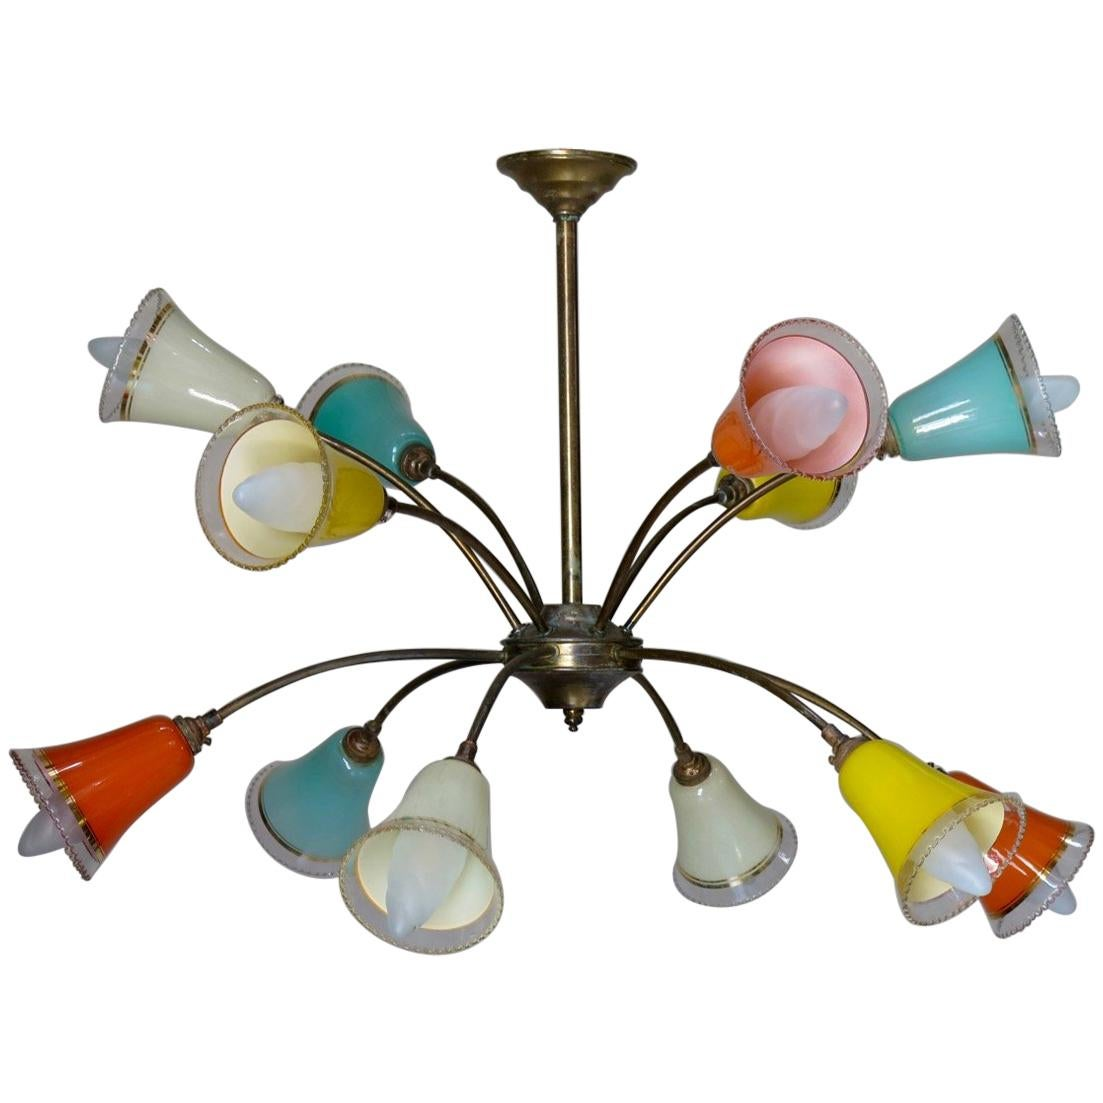 French 1950s Sputnik Chandelier with Colored Glass Shades